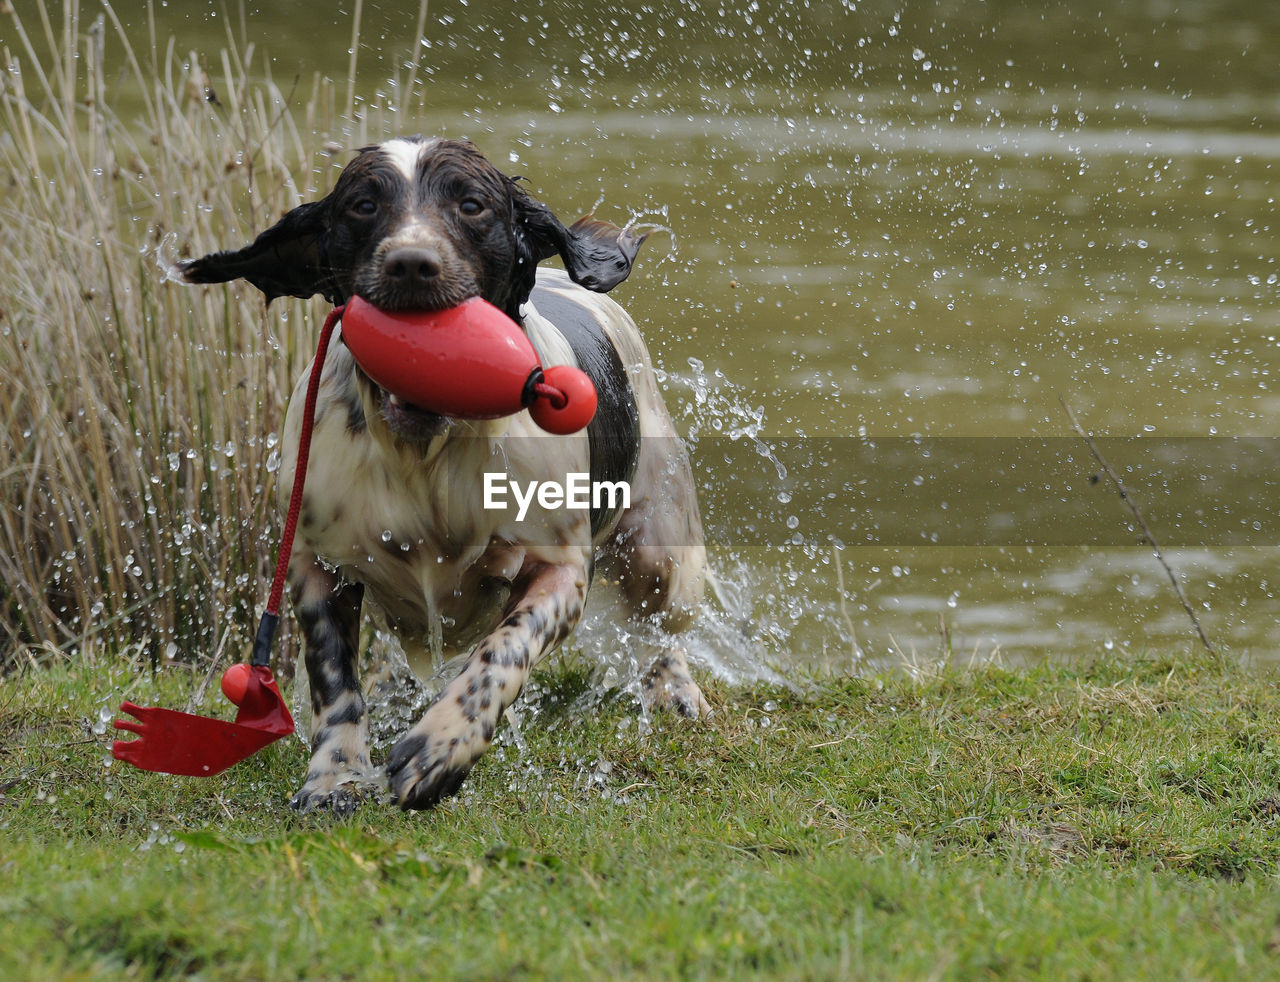 Portrait Of Wet Springer Spaniel Running With Toy In Mouth On Grass